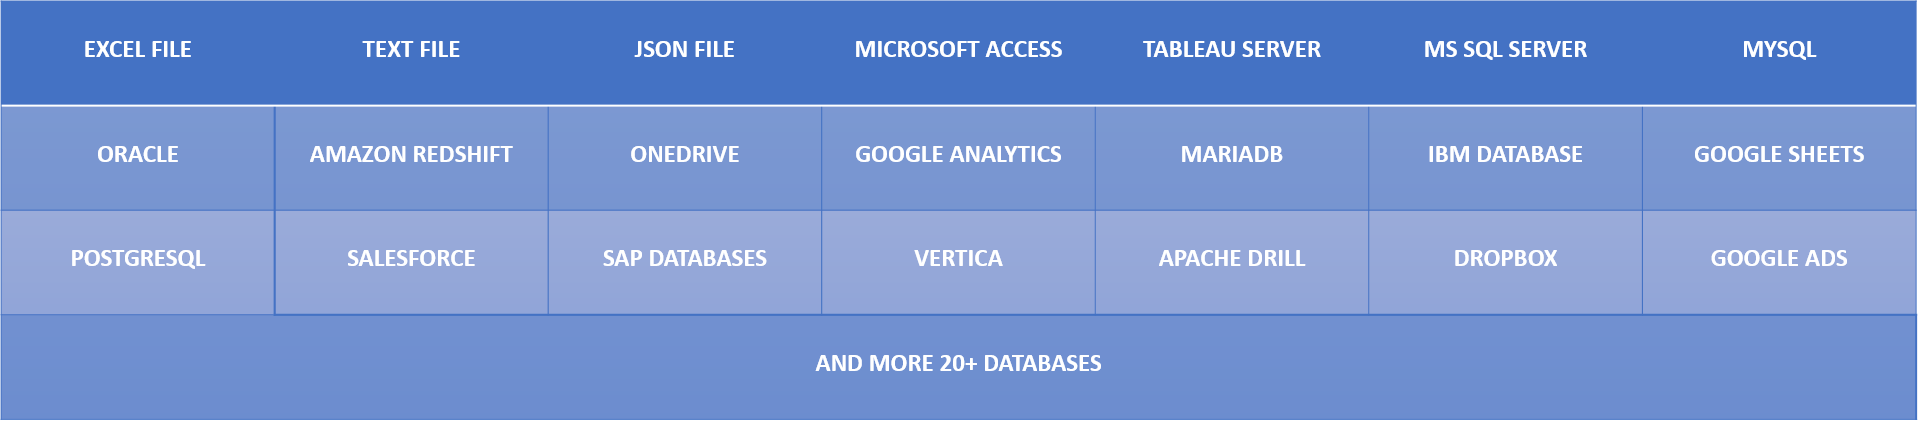 25+ Databases used at ChromeInfotech for data visualization